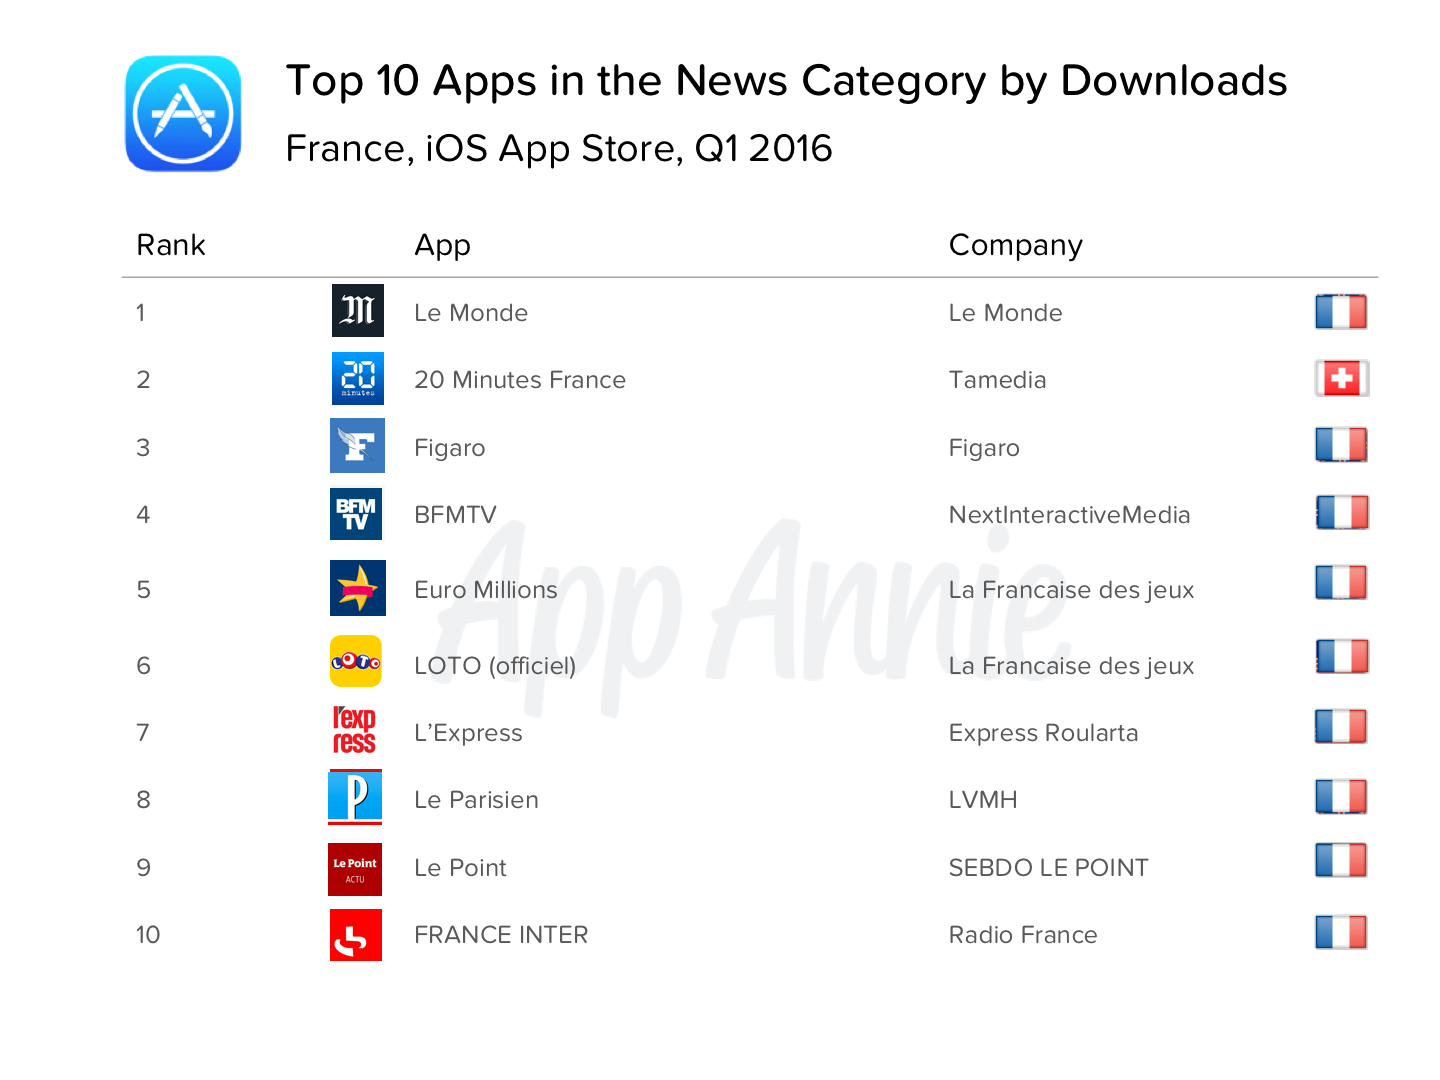 Top 10 Apps in the News Category by Downloads France iOS App Store Q1 2016